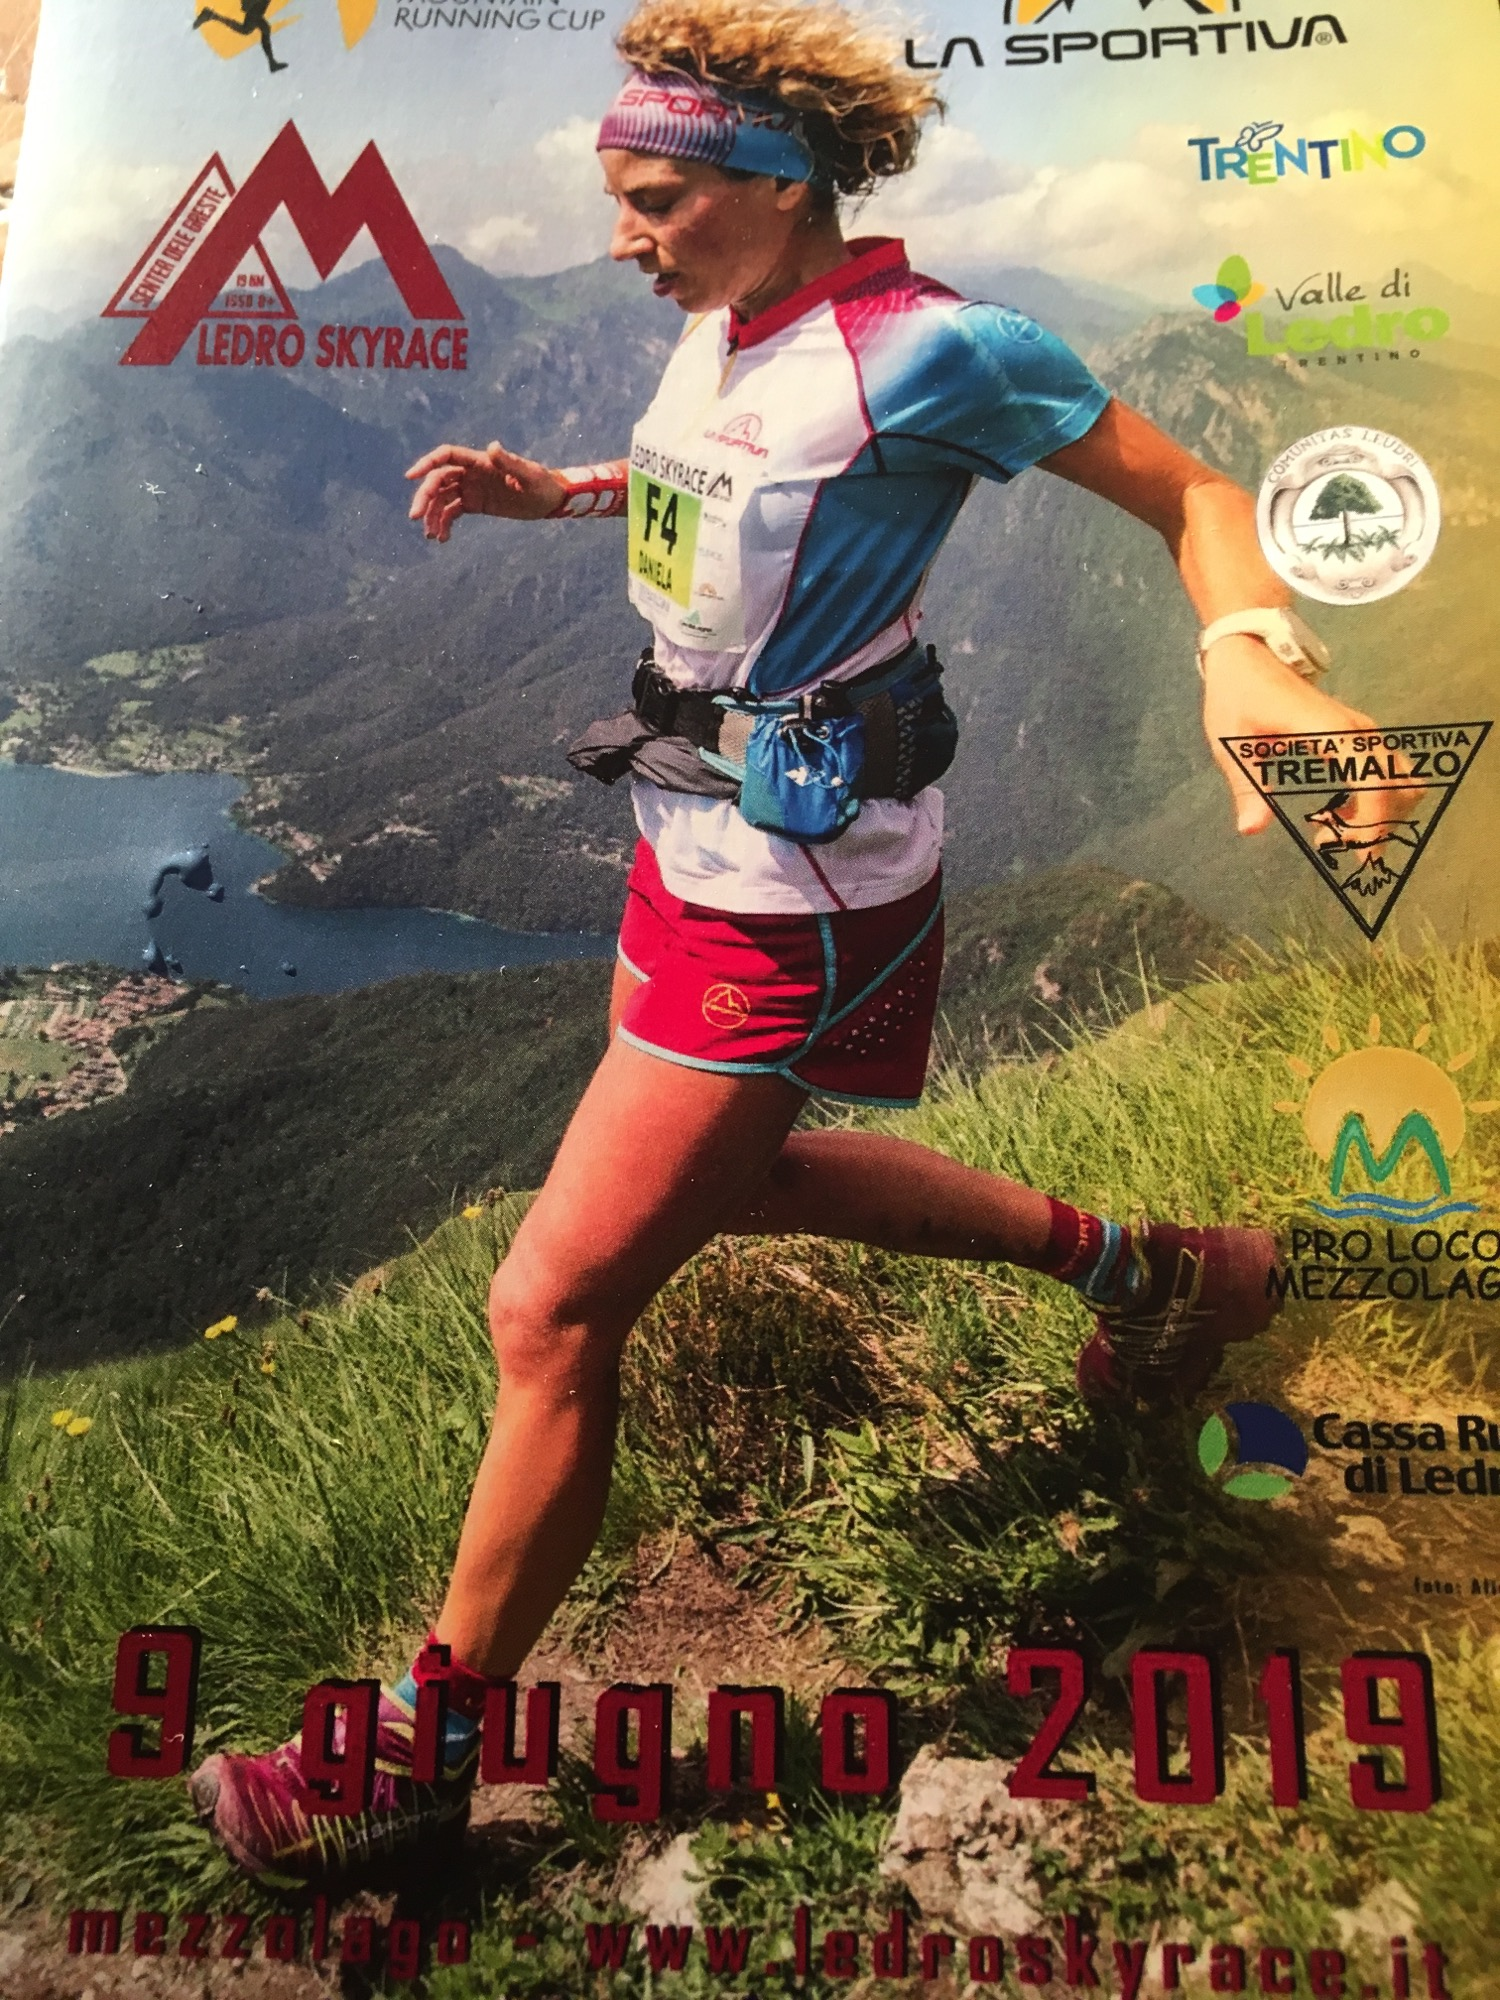 Skyrace ..., are You ready ???